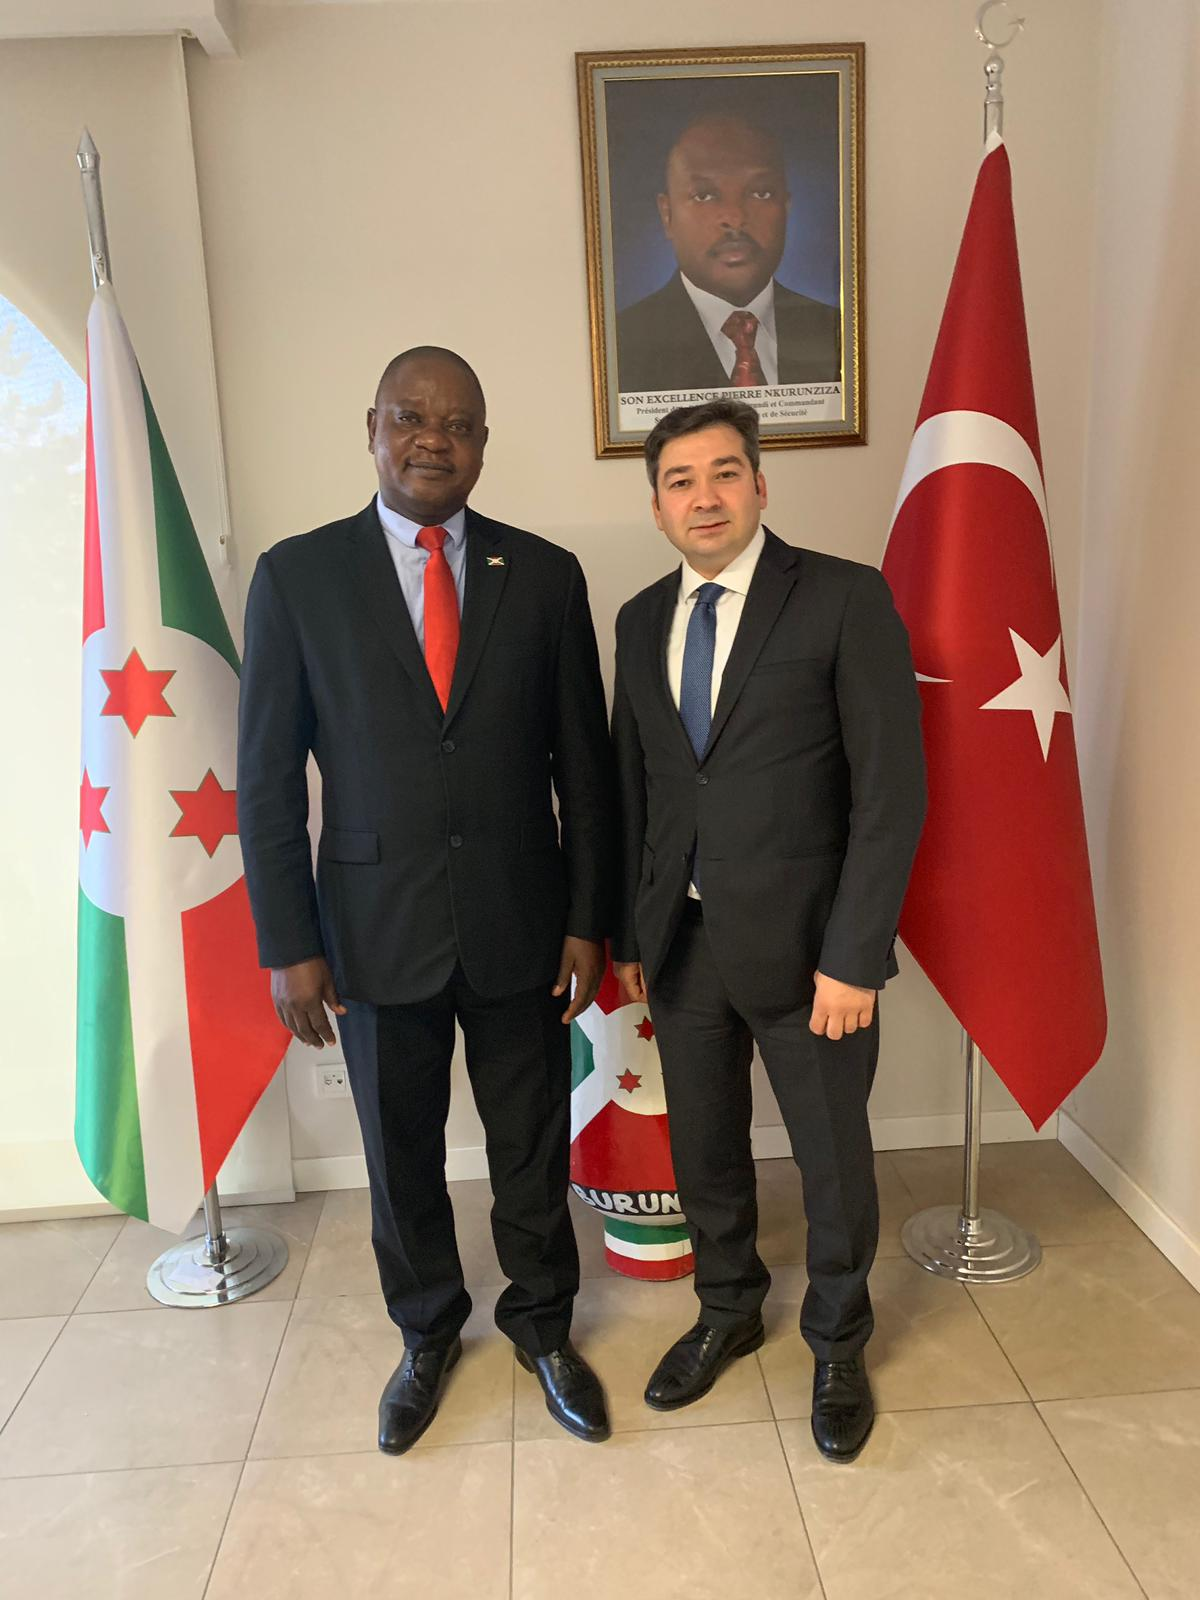 Visit to The Ambassador to Burundi